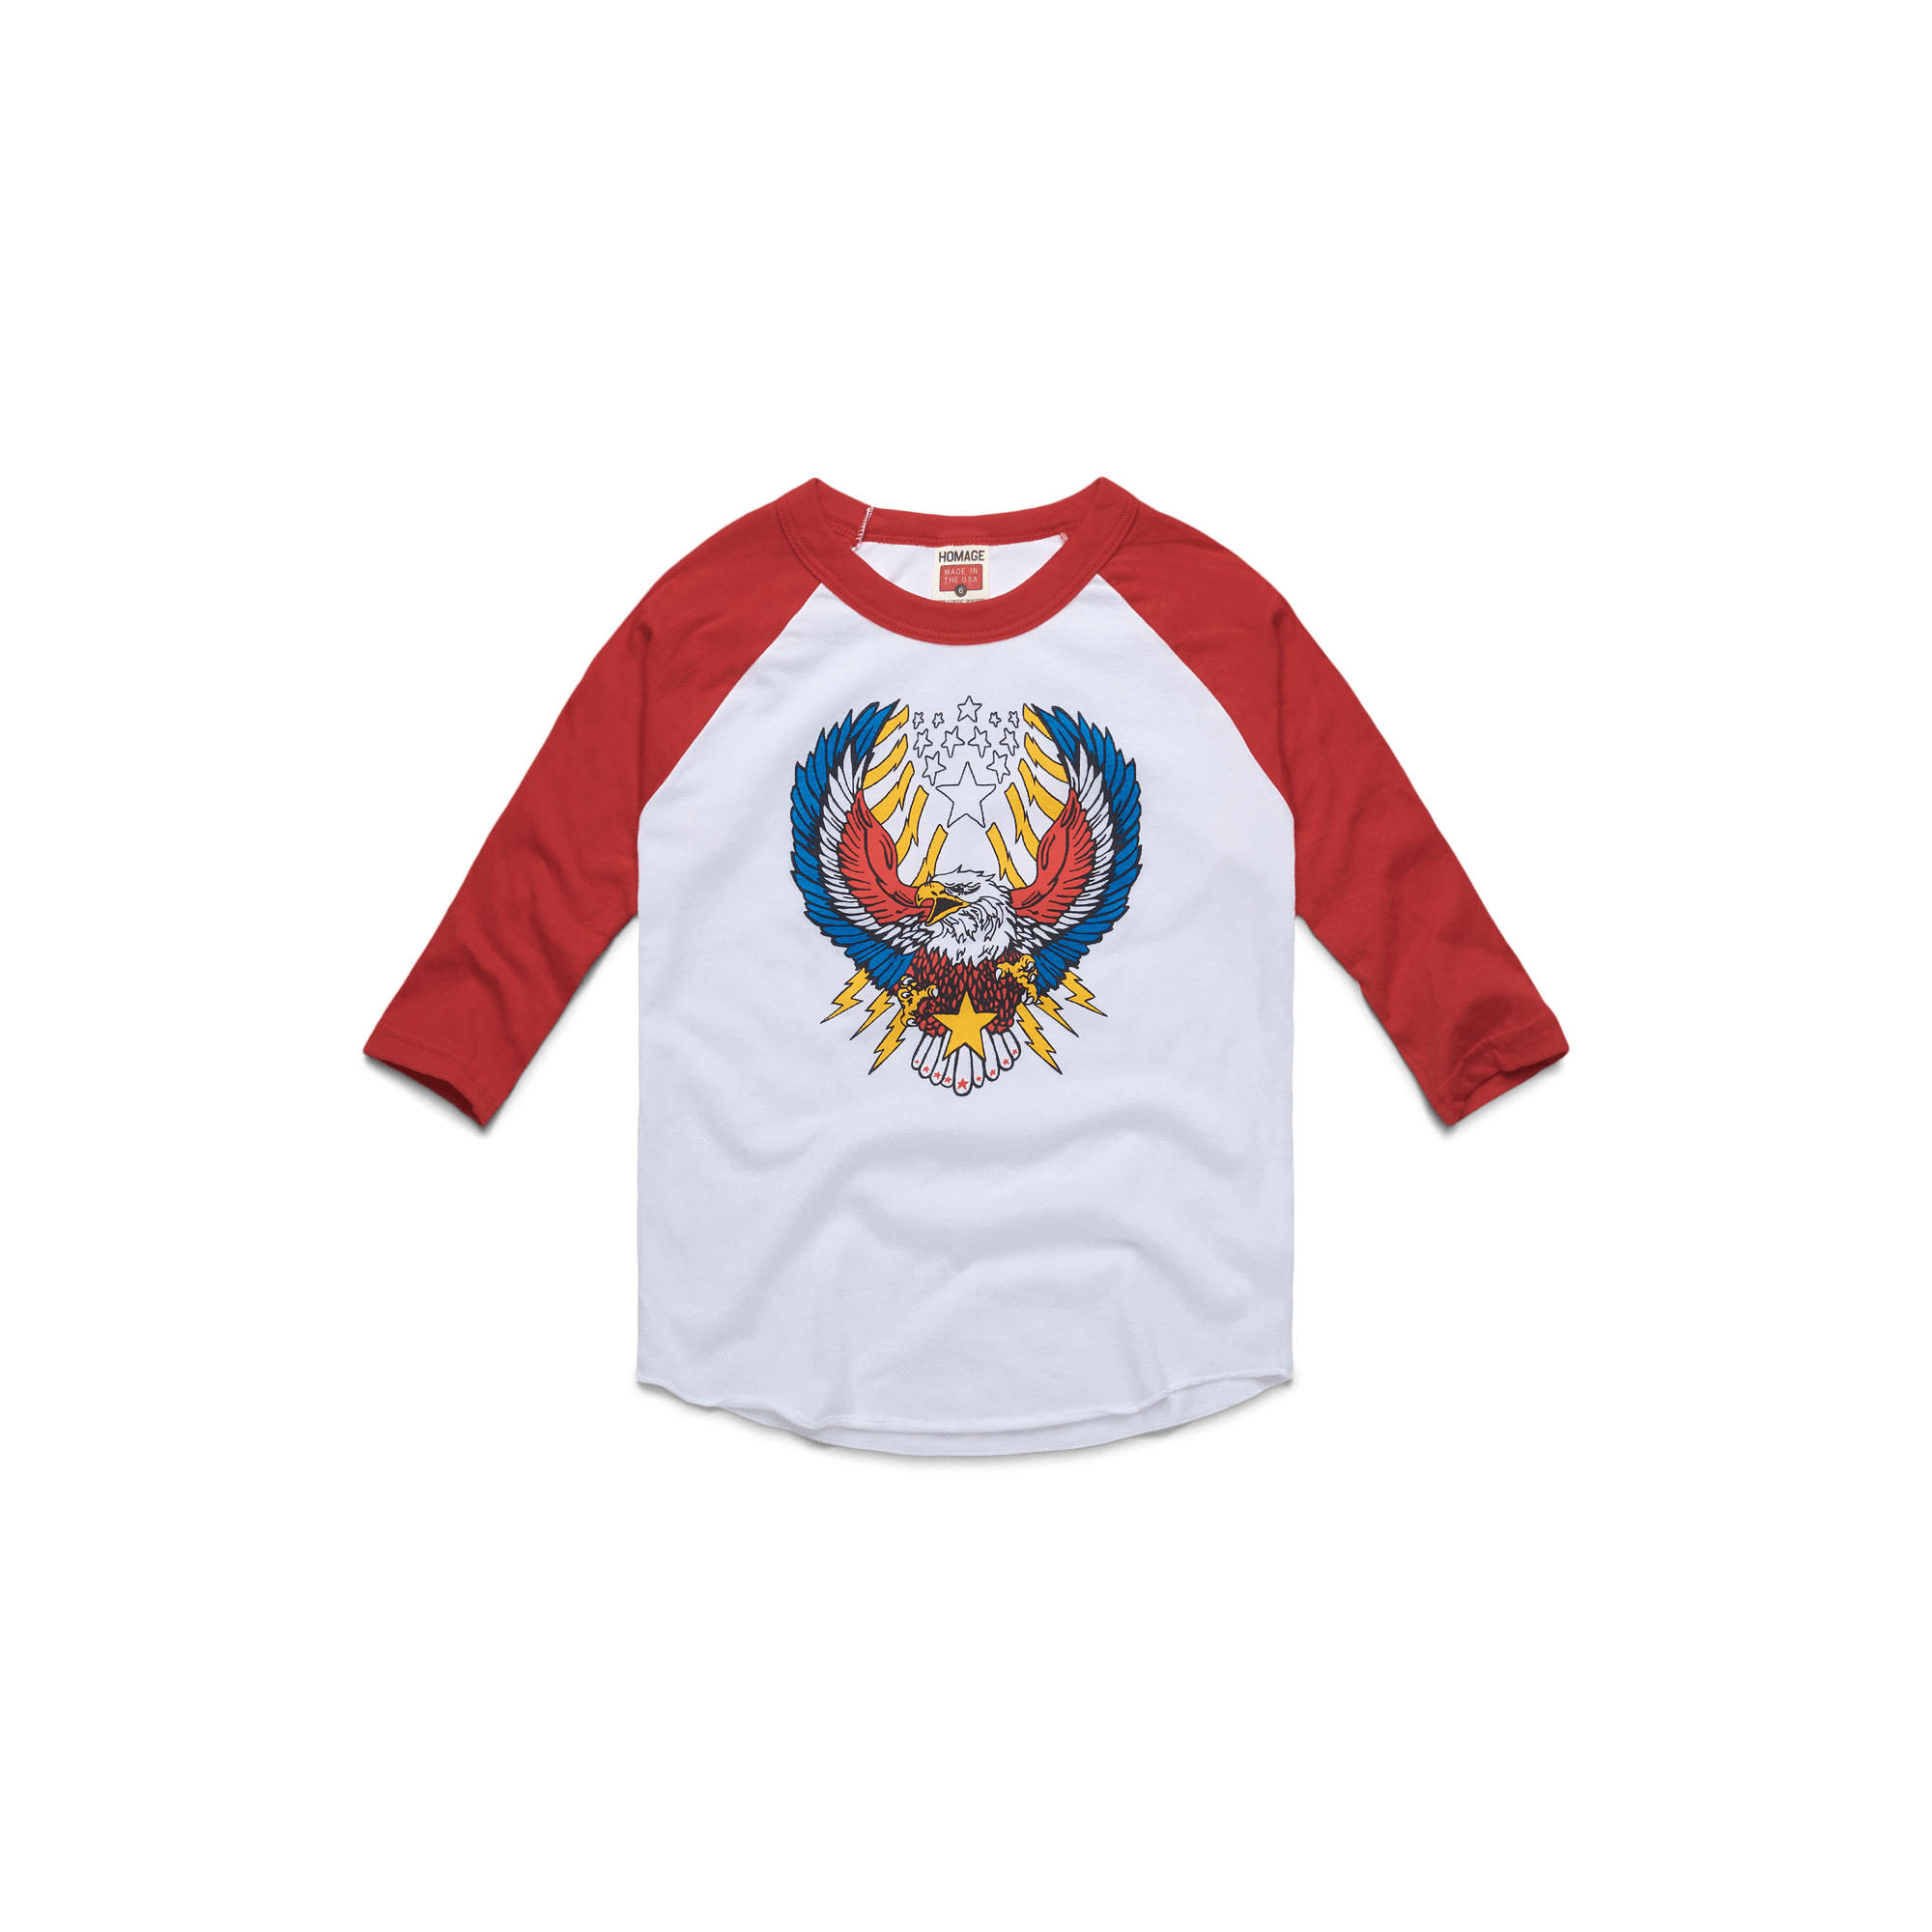 081dd598c Kids Baby And Youth Retro Vintage Apparel – HOMAGE